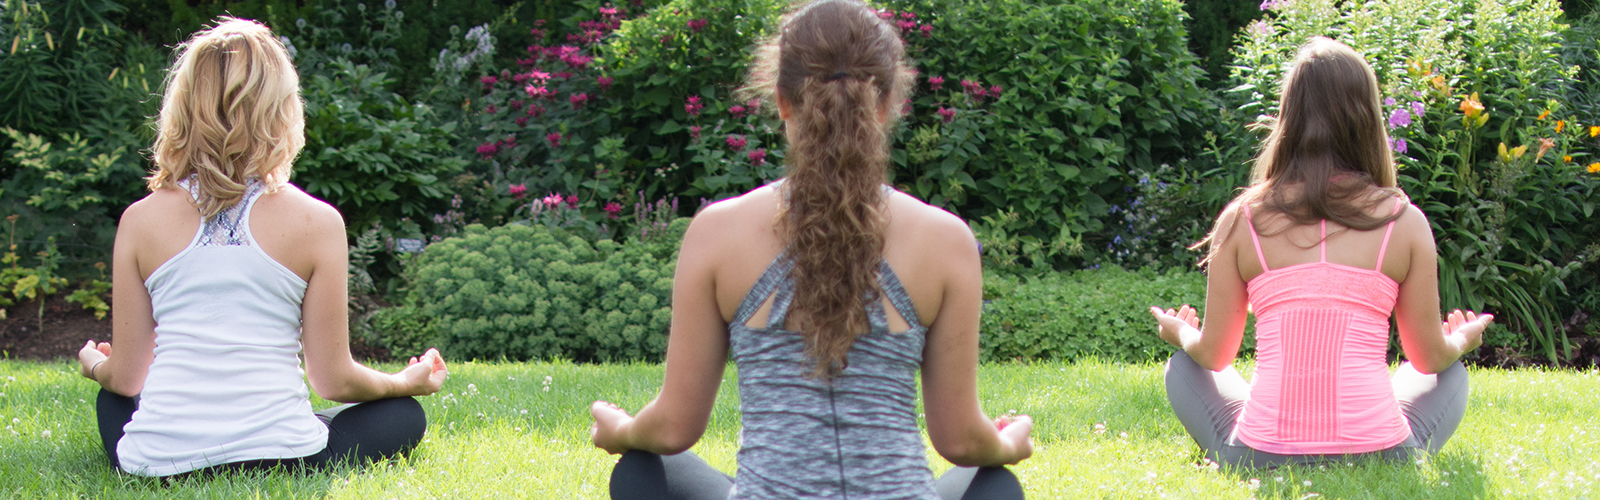 Outdoor-fitness-yoga